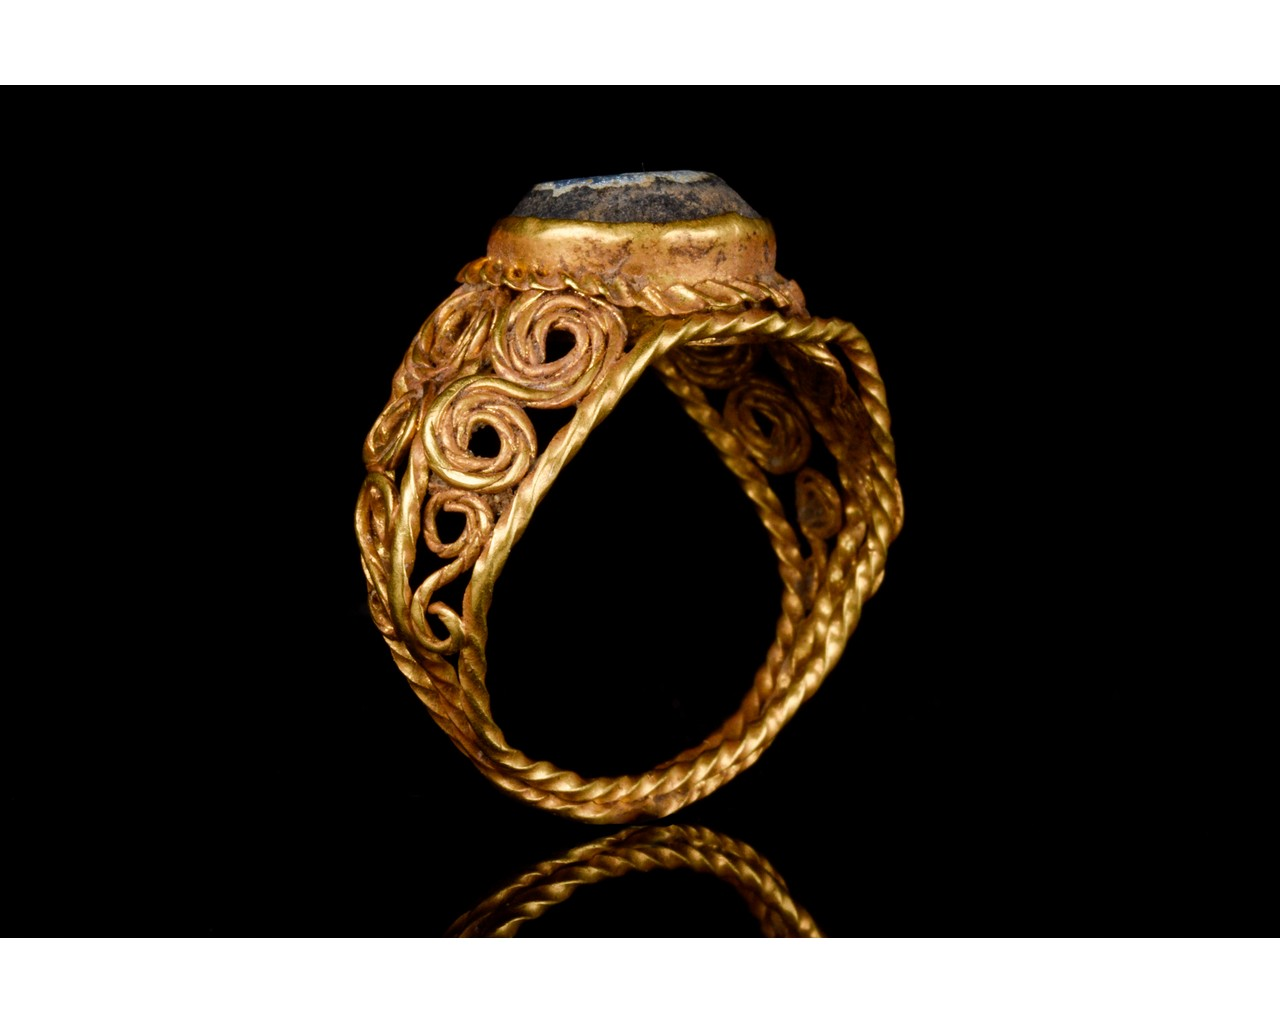 LATE ROMAN GOLD AND GLASS RING - EX CHRISTIES - FULL ANALYSIS - Image 6 of 8